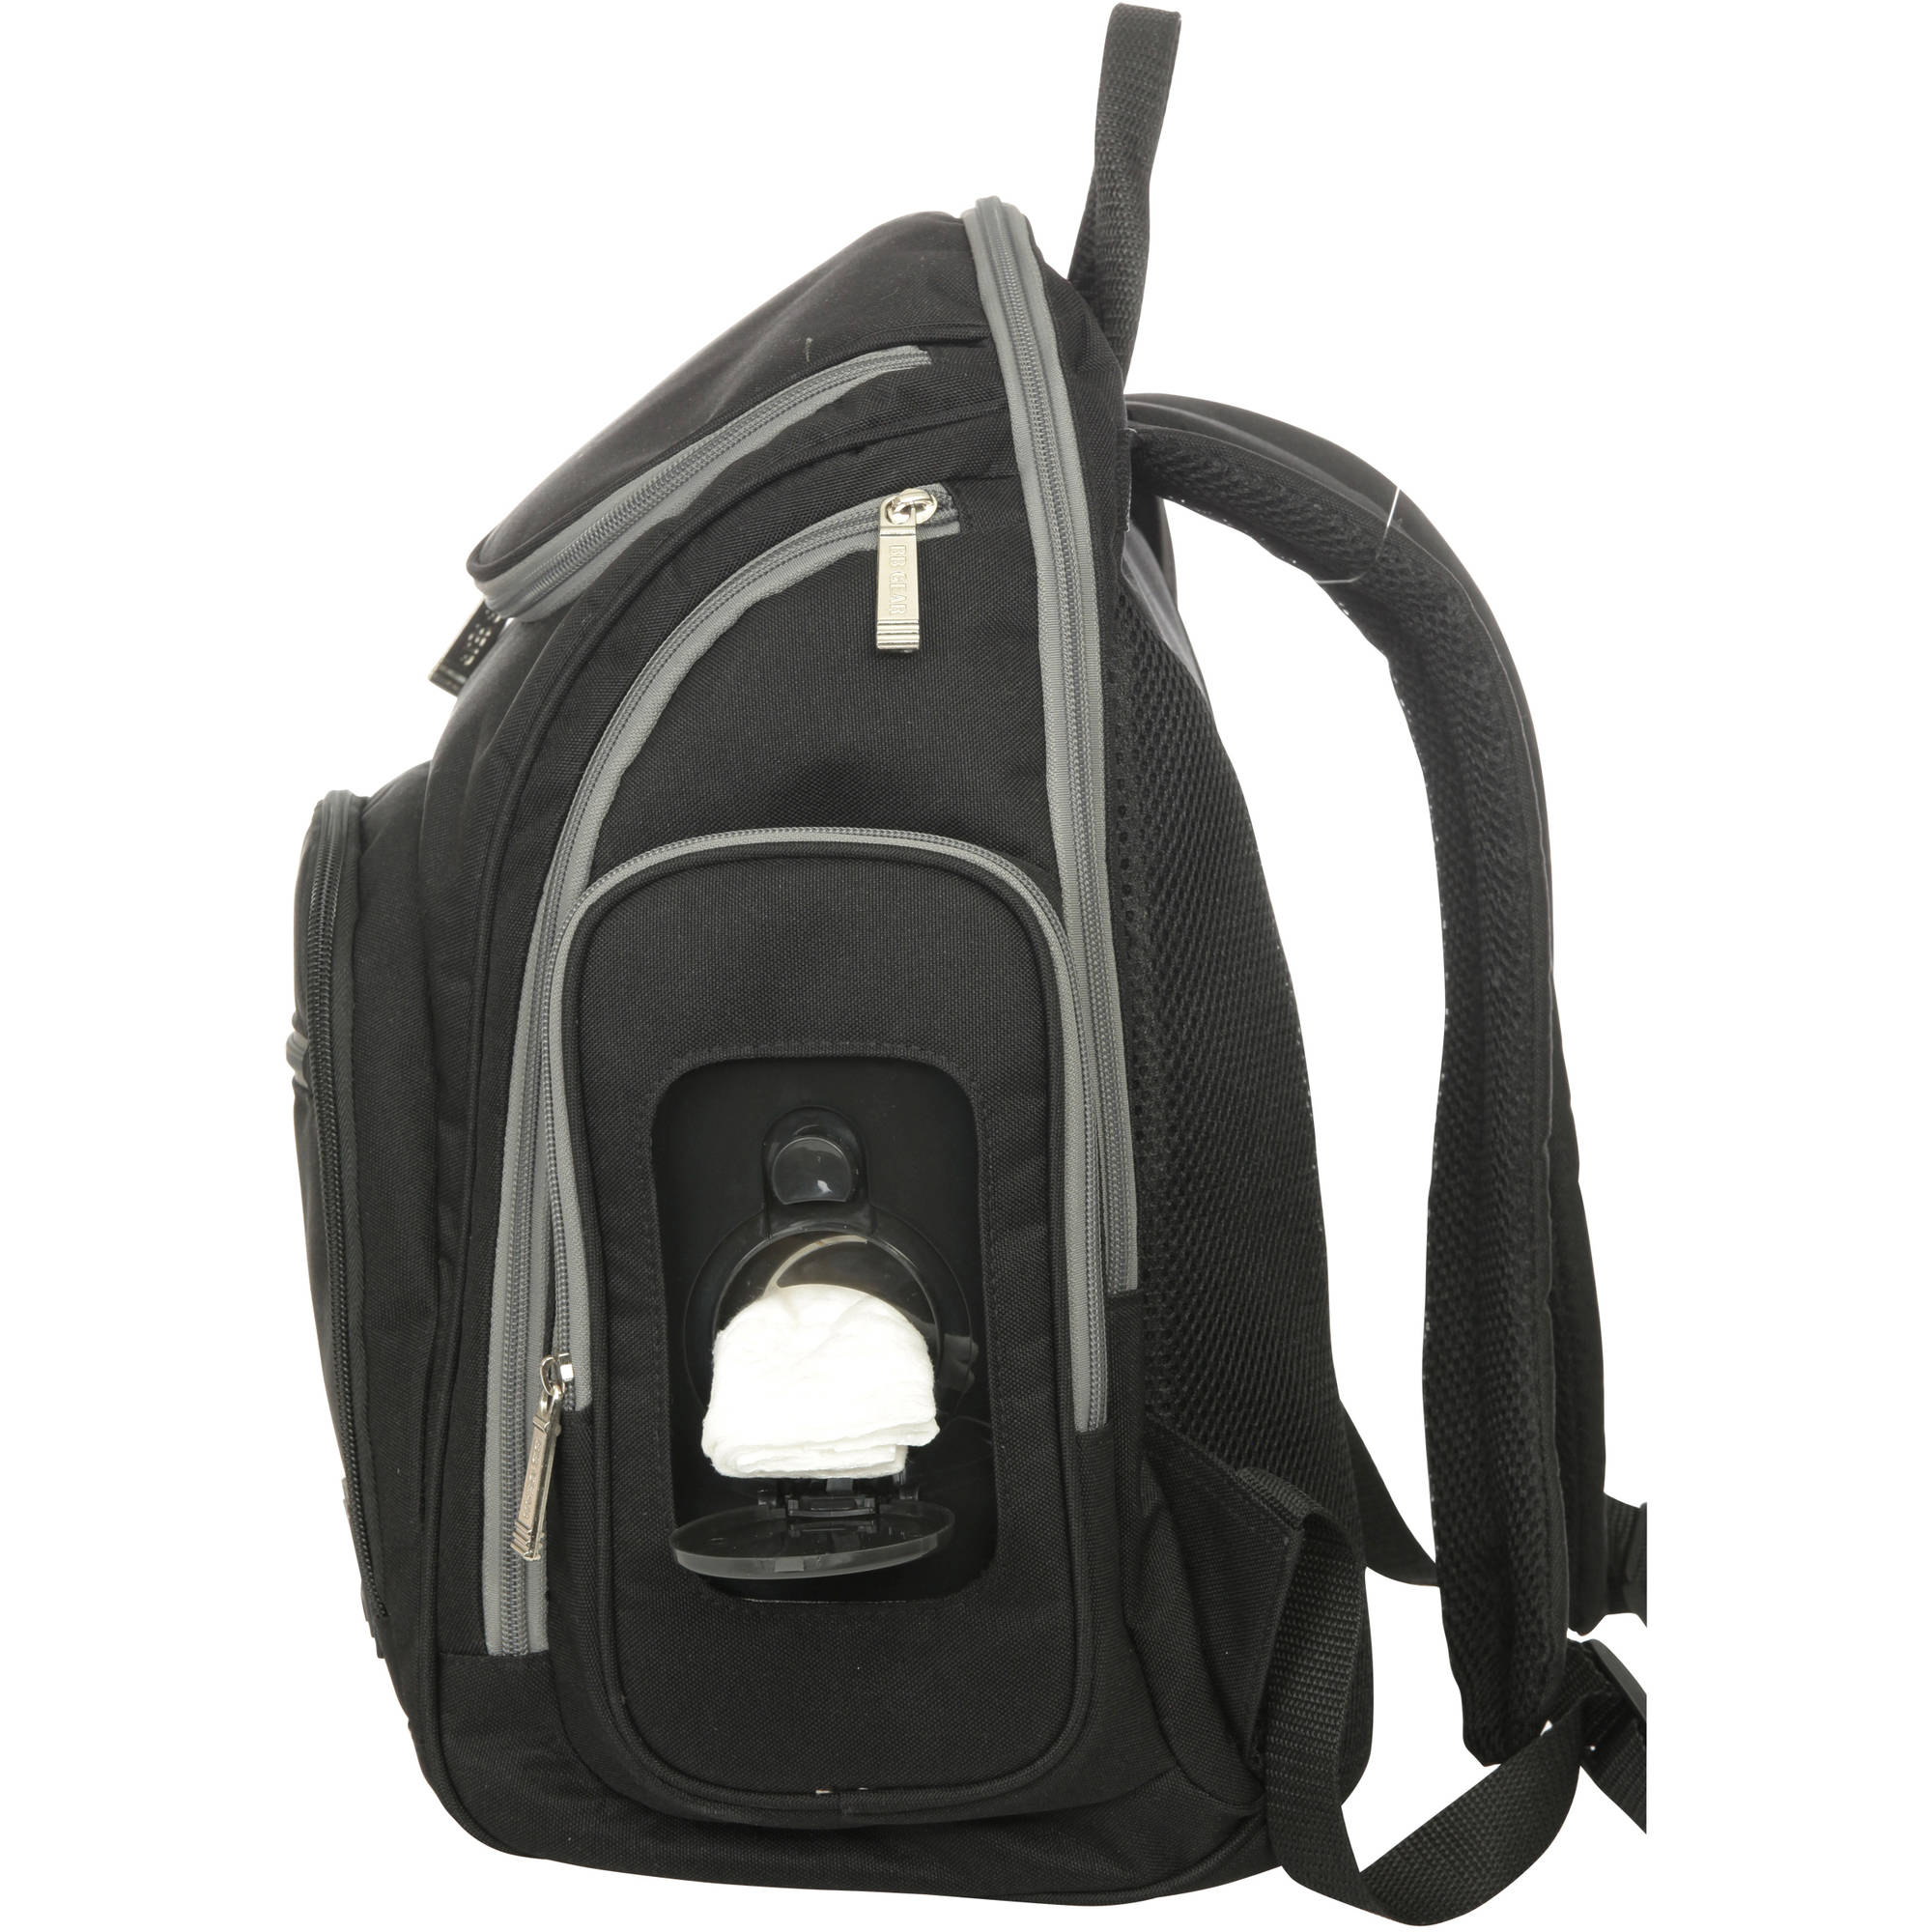 d955fab4454848 BB Gear Places and Spaces Back Pack Diaper Bag - Walmart.com